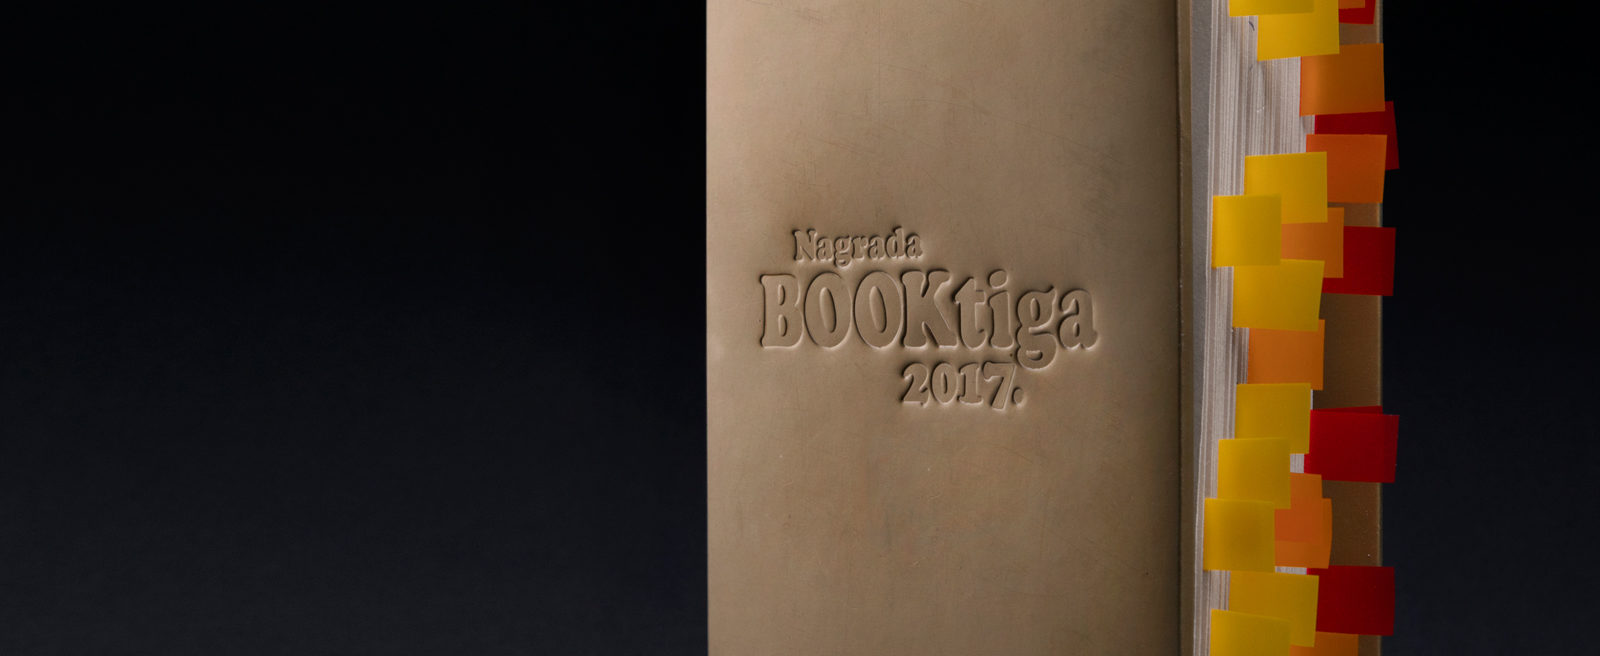 Design of the Booktiga award for the most read author